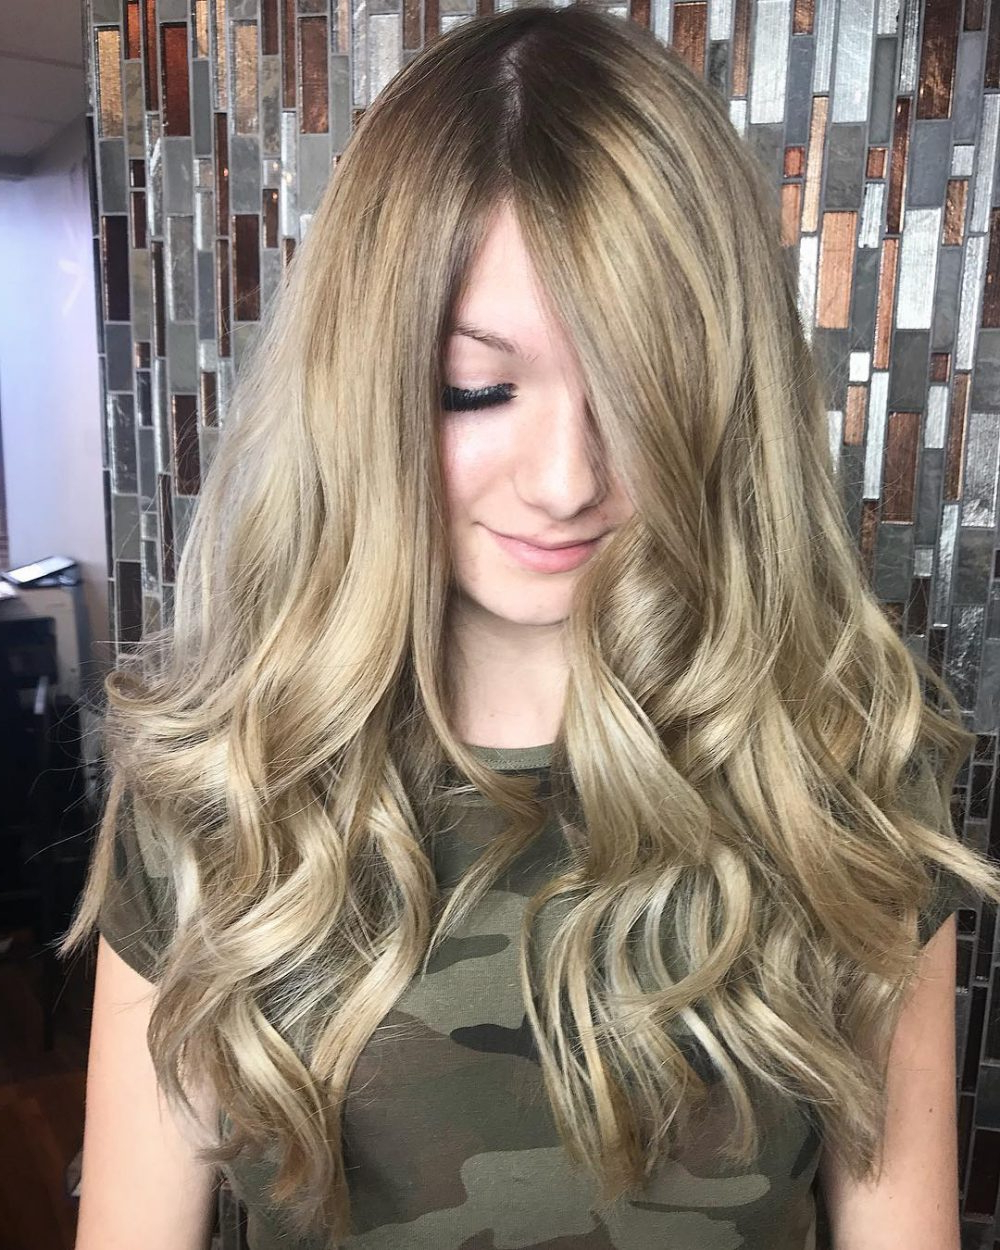 Newest Long Wavy Layers Hairstyles Intended For 24 Long Wavy Hair Ideas That Are Freaking Hot In (View 12 of 20)